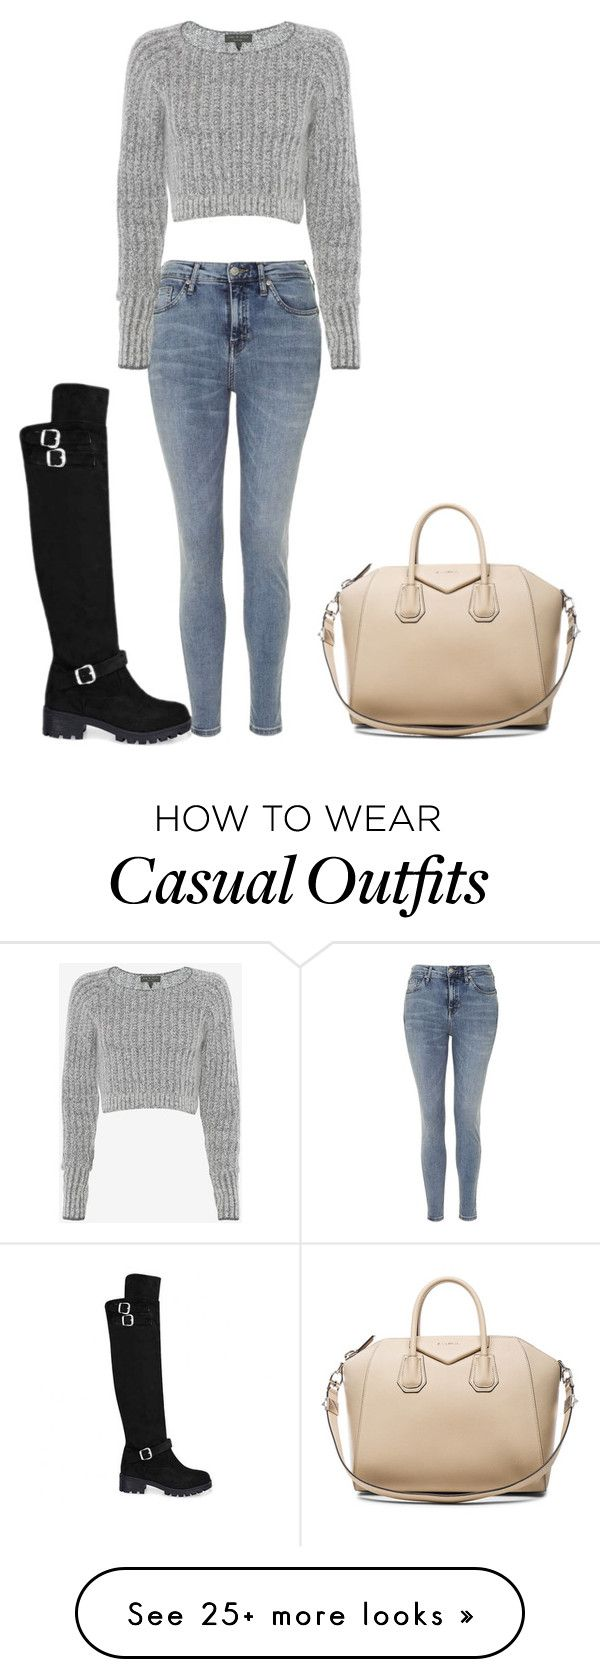 """Casual"" by hyspanicprincesa on Polyvore featuring Topshop, rag & bone, Givenchy, women's clothing, women's fashion, women, female, woman, misses and juniors"